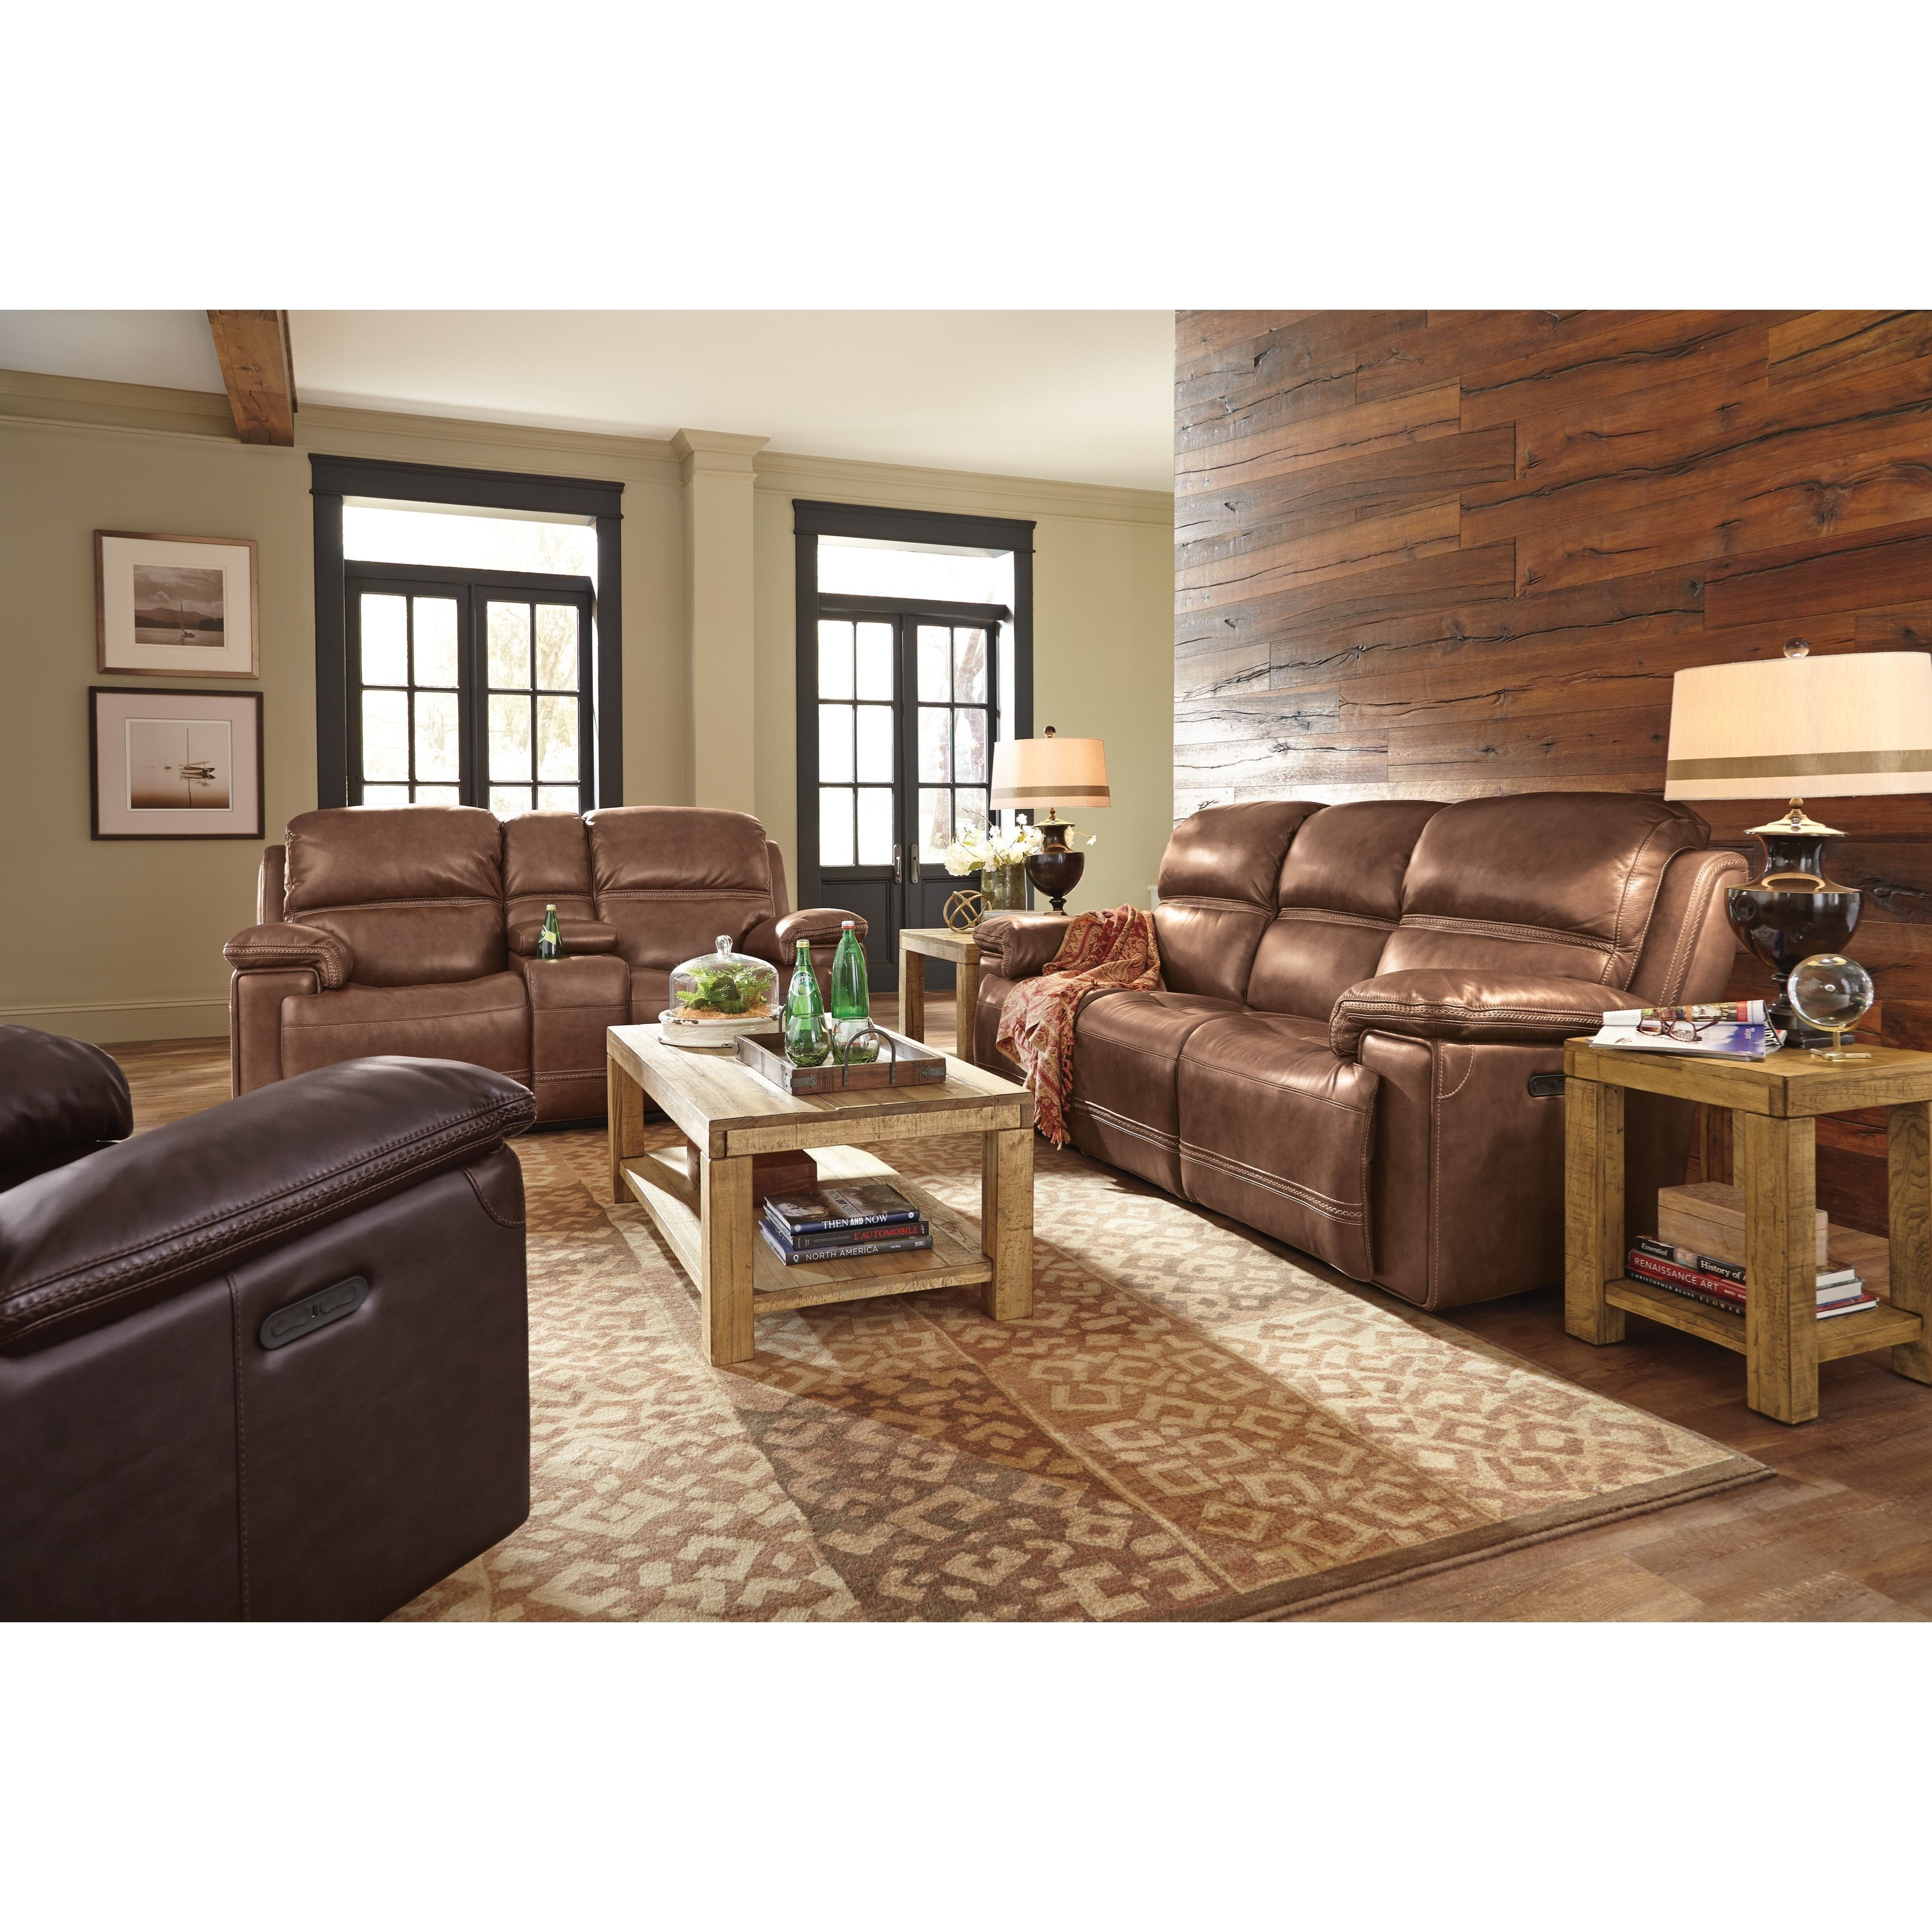 flexsteel double reclining sofa reviews mickey mouse clubhouse flip open with slumber bed latitudes fenwick living room group steger s